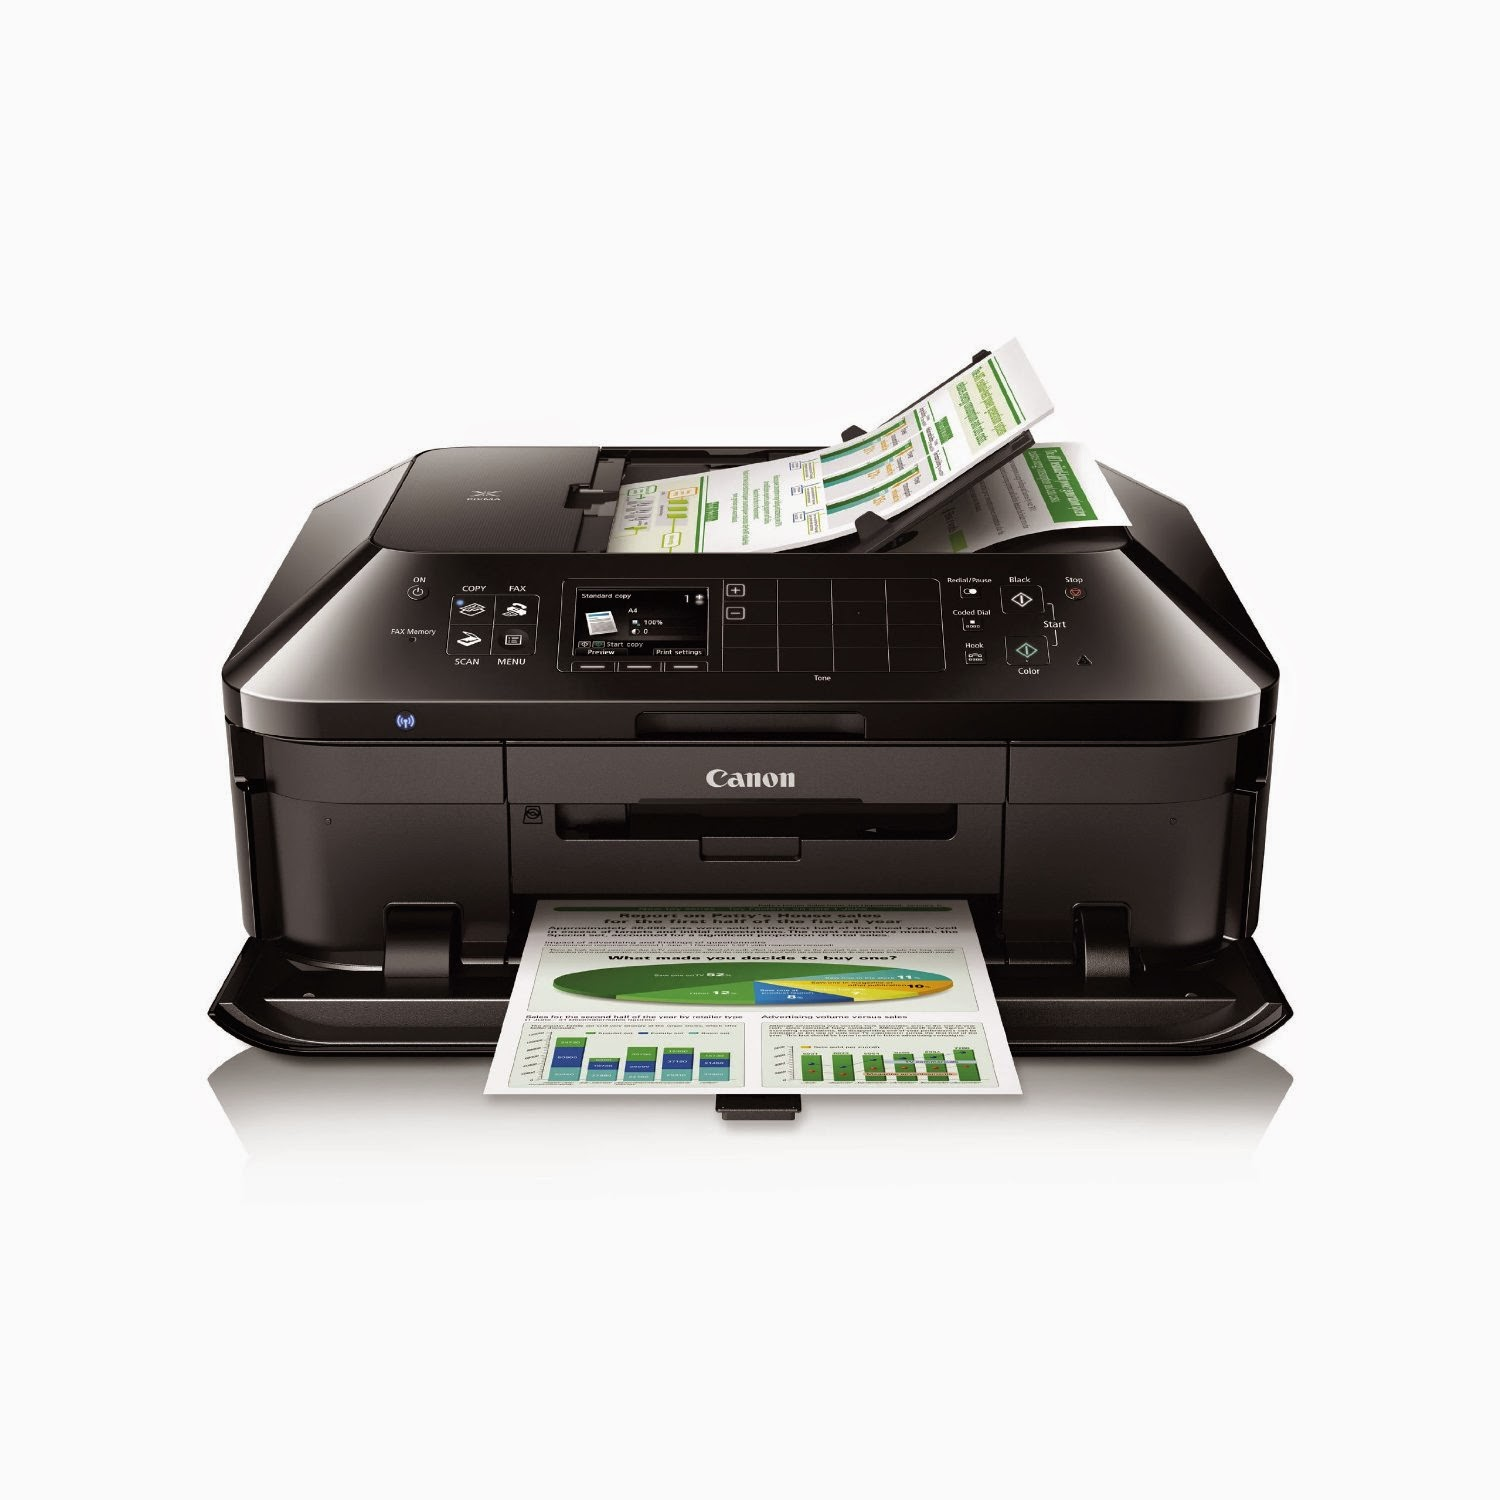 Canon PIXMA MX922 Wireless Color Photo Printer with Scanner, Copier, and Fax